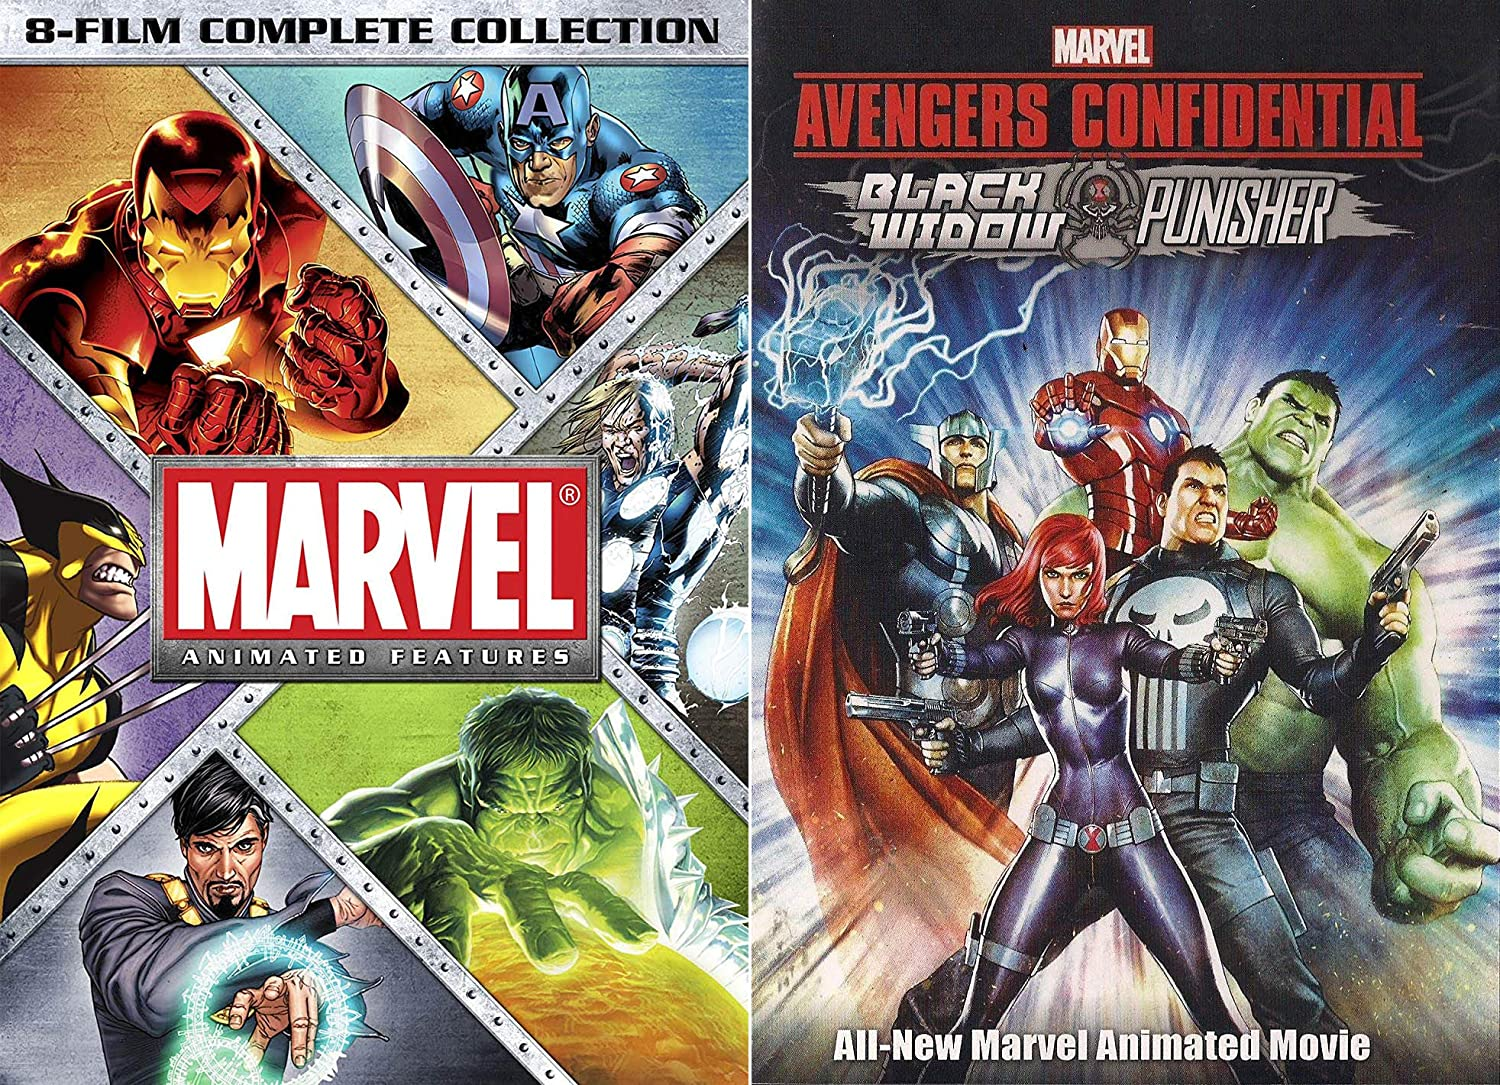 Marvel Knights 9 Animated Full Feature Bundle - Marvel Animated Features: 8- Film Complete Collection & Black Widow and Punisher: Avengers Confidential  9- ...